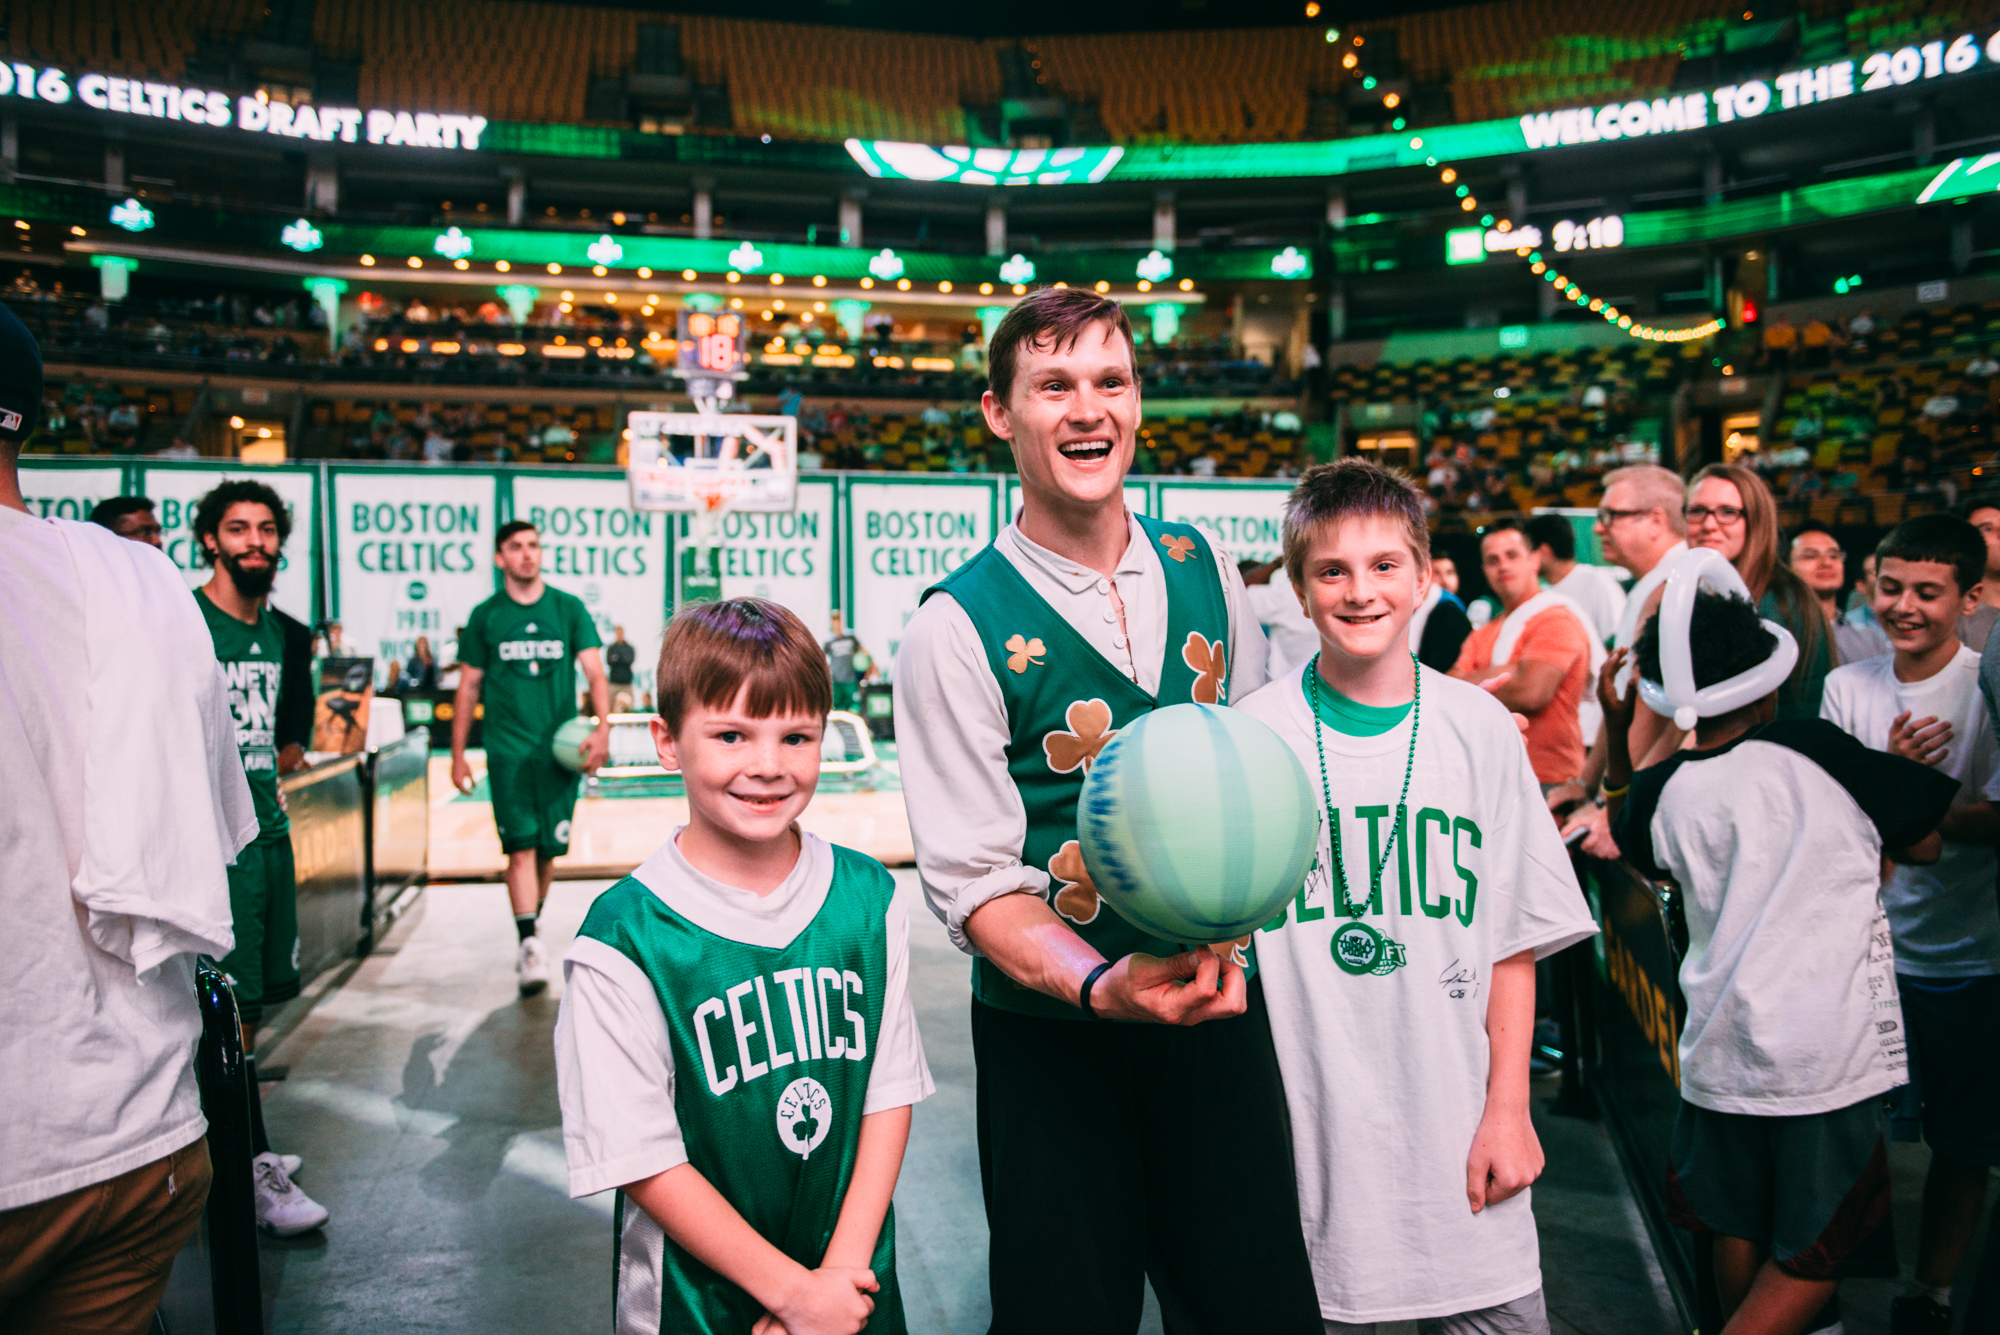 Celtics_Draft_Party_062316-738.jpg